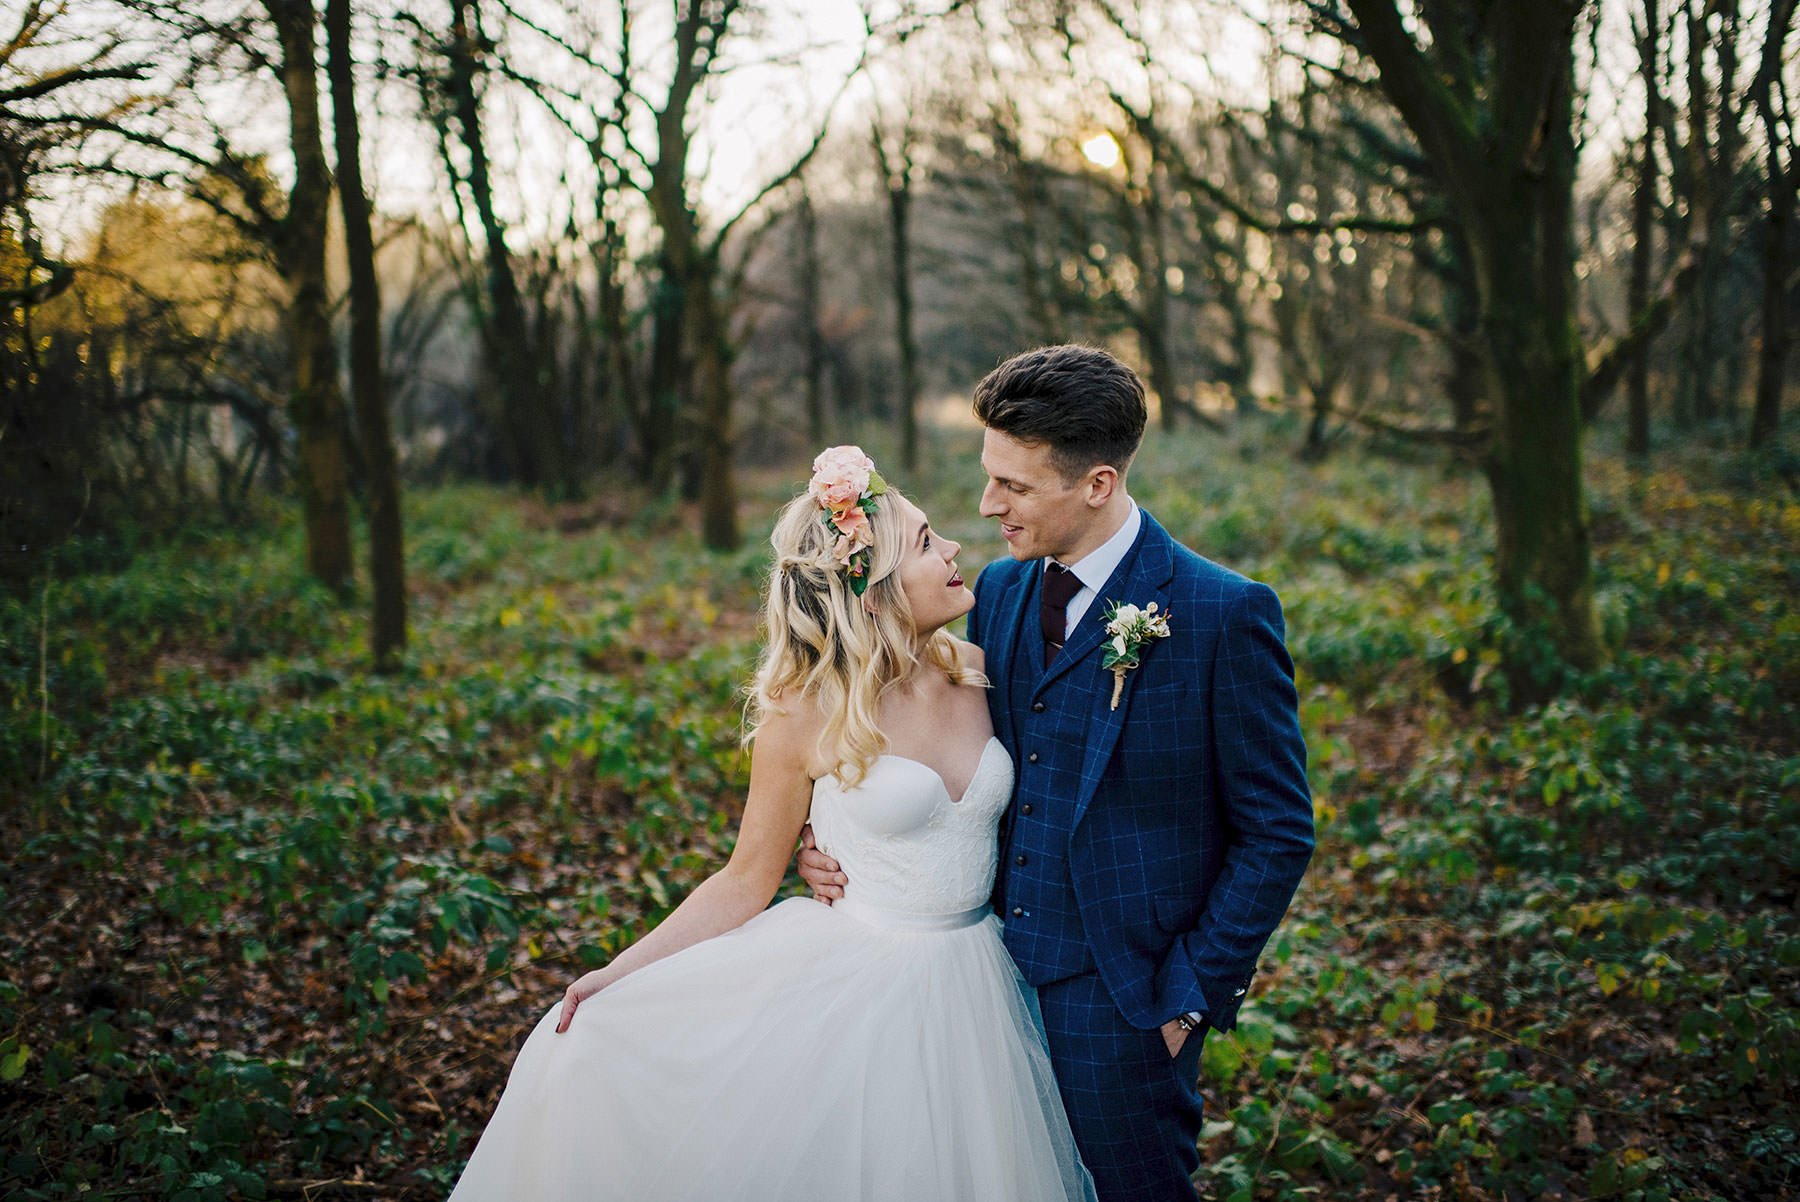 golden hour winter wedding, winter wedding